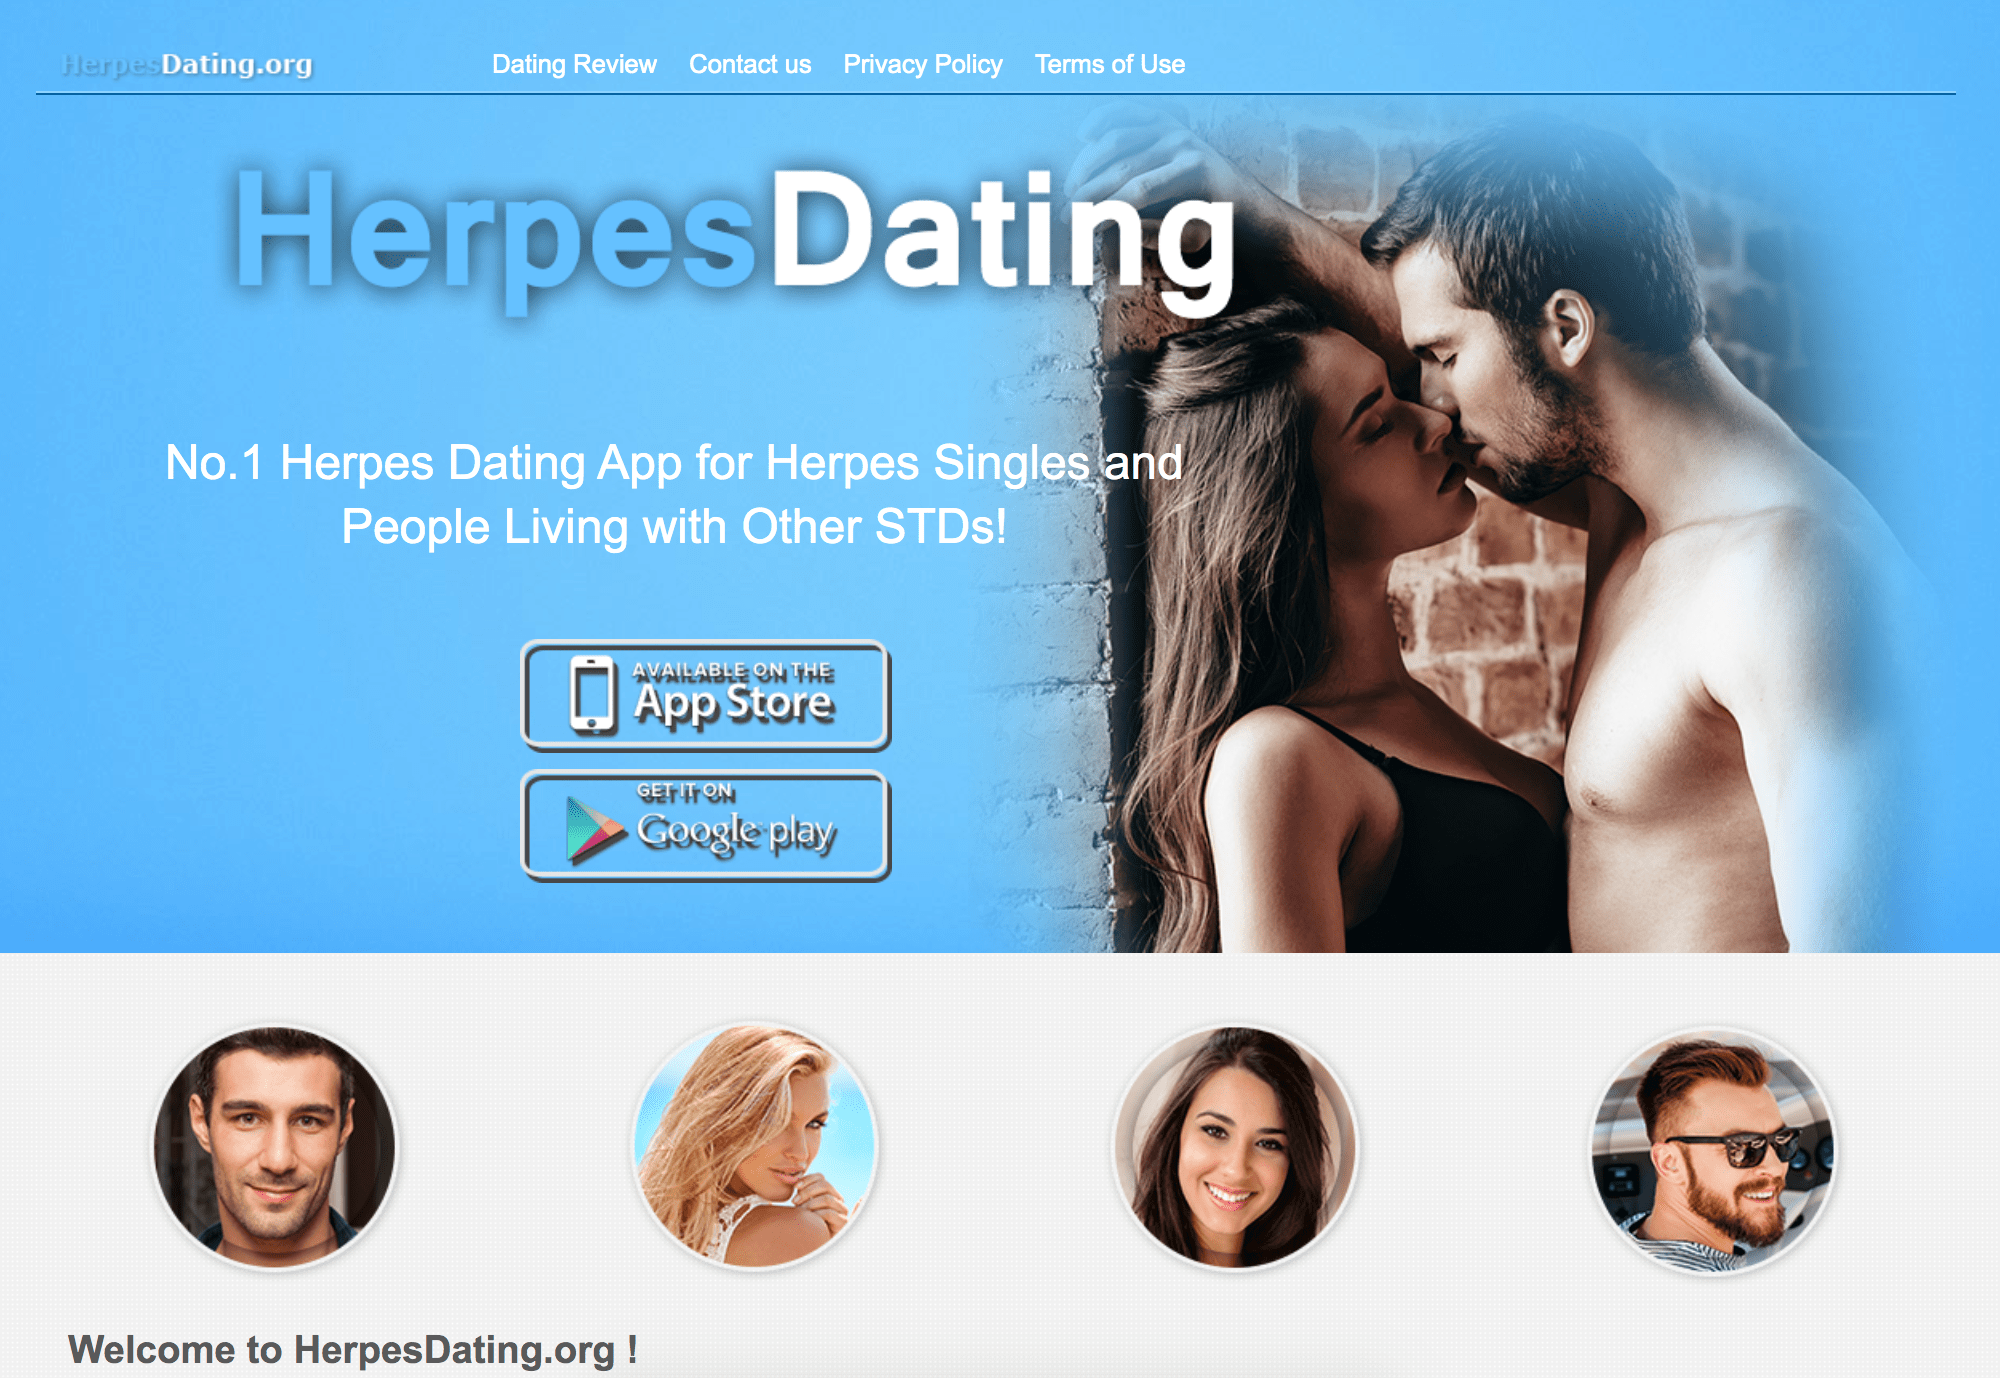 herpes dating app website